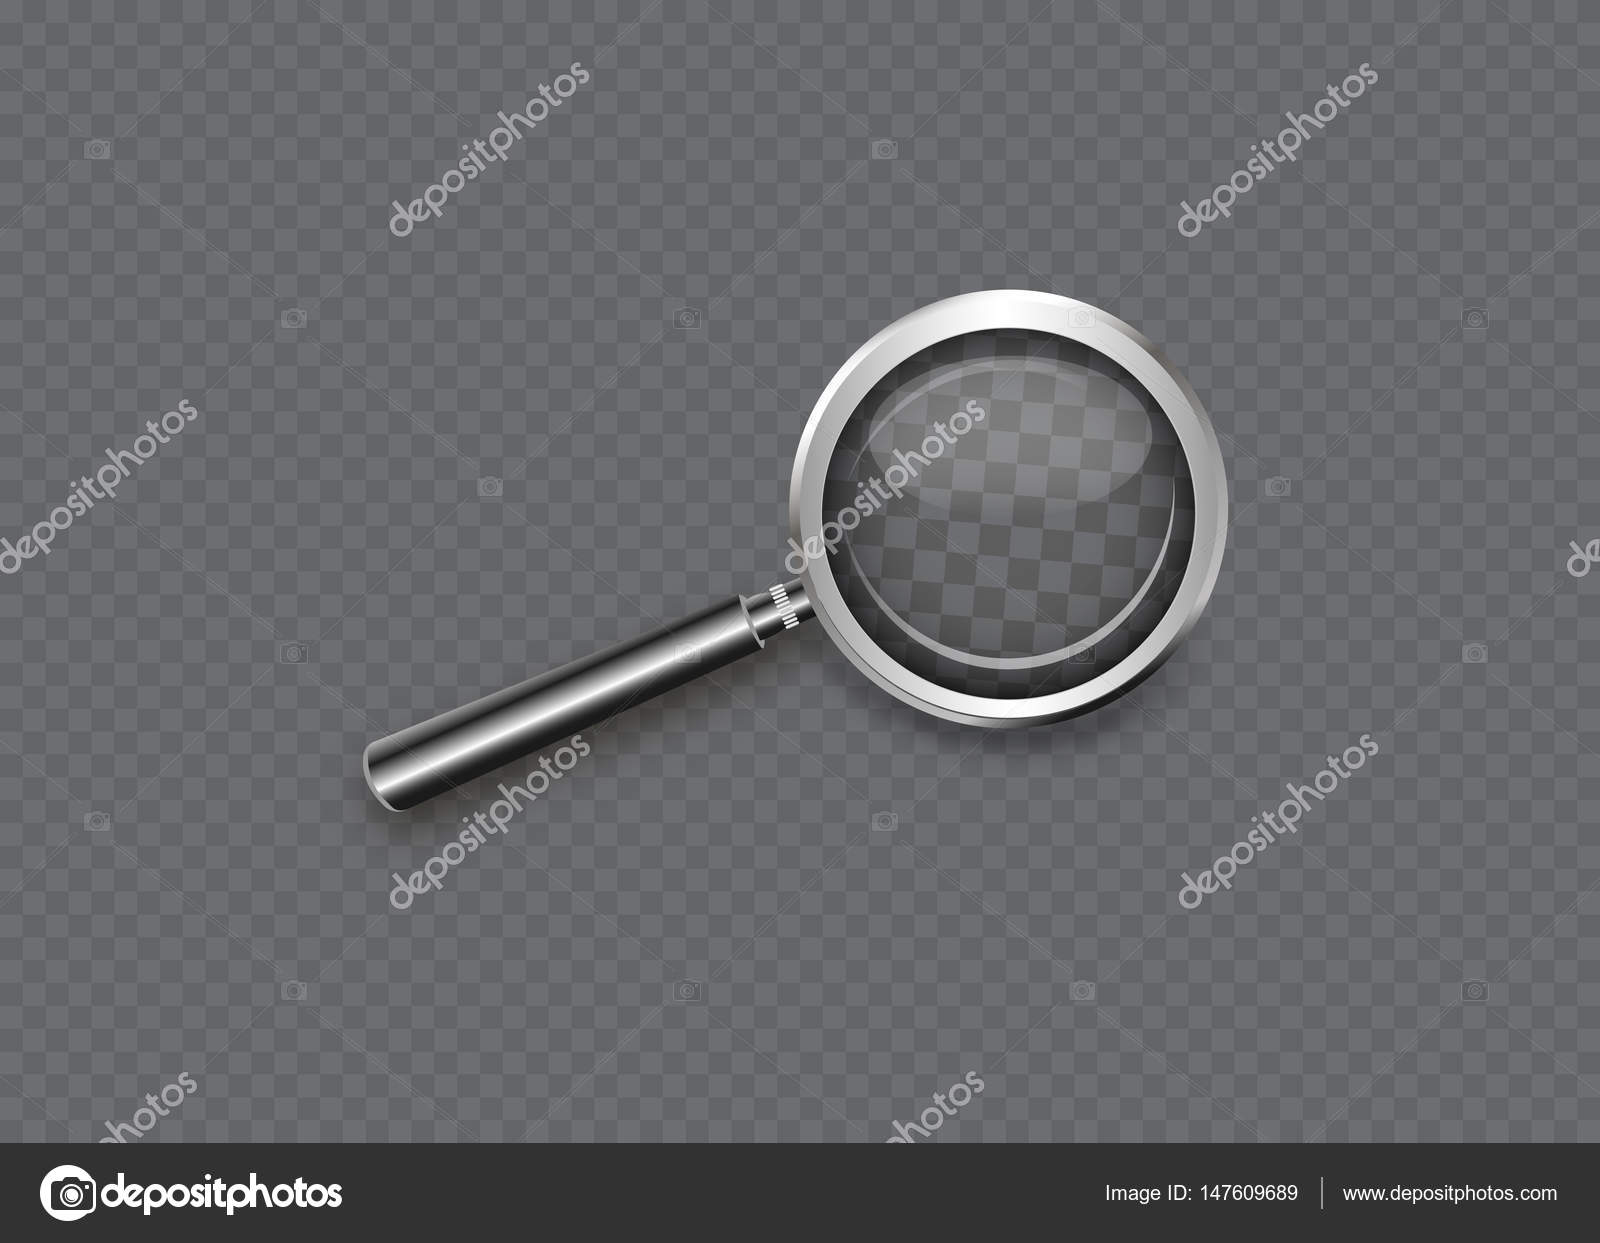 depositphotos_147609689-stock-illustration-magnifying-glass-isolated-on-a Faszinierend Lupe Mit Licht Dekorationen